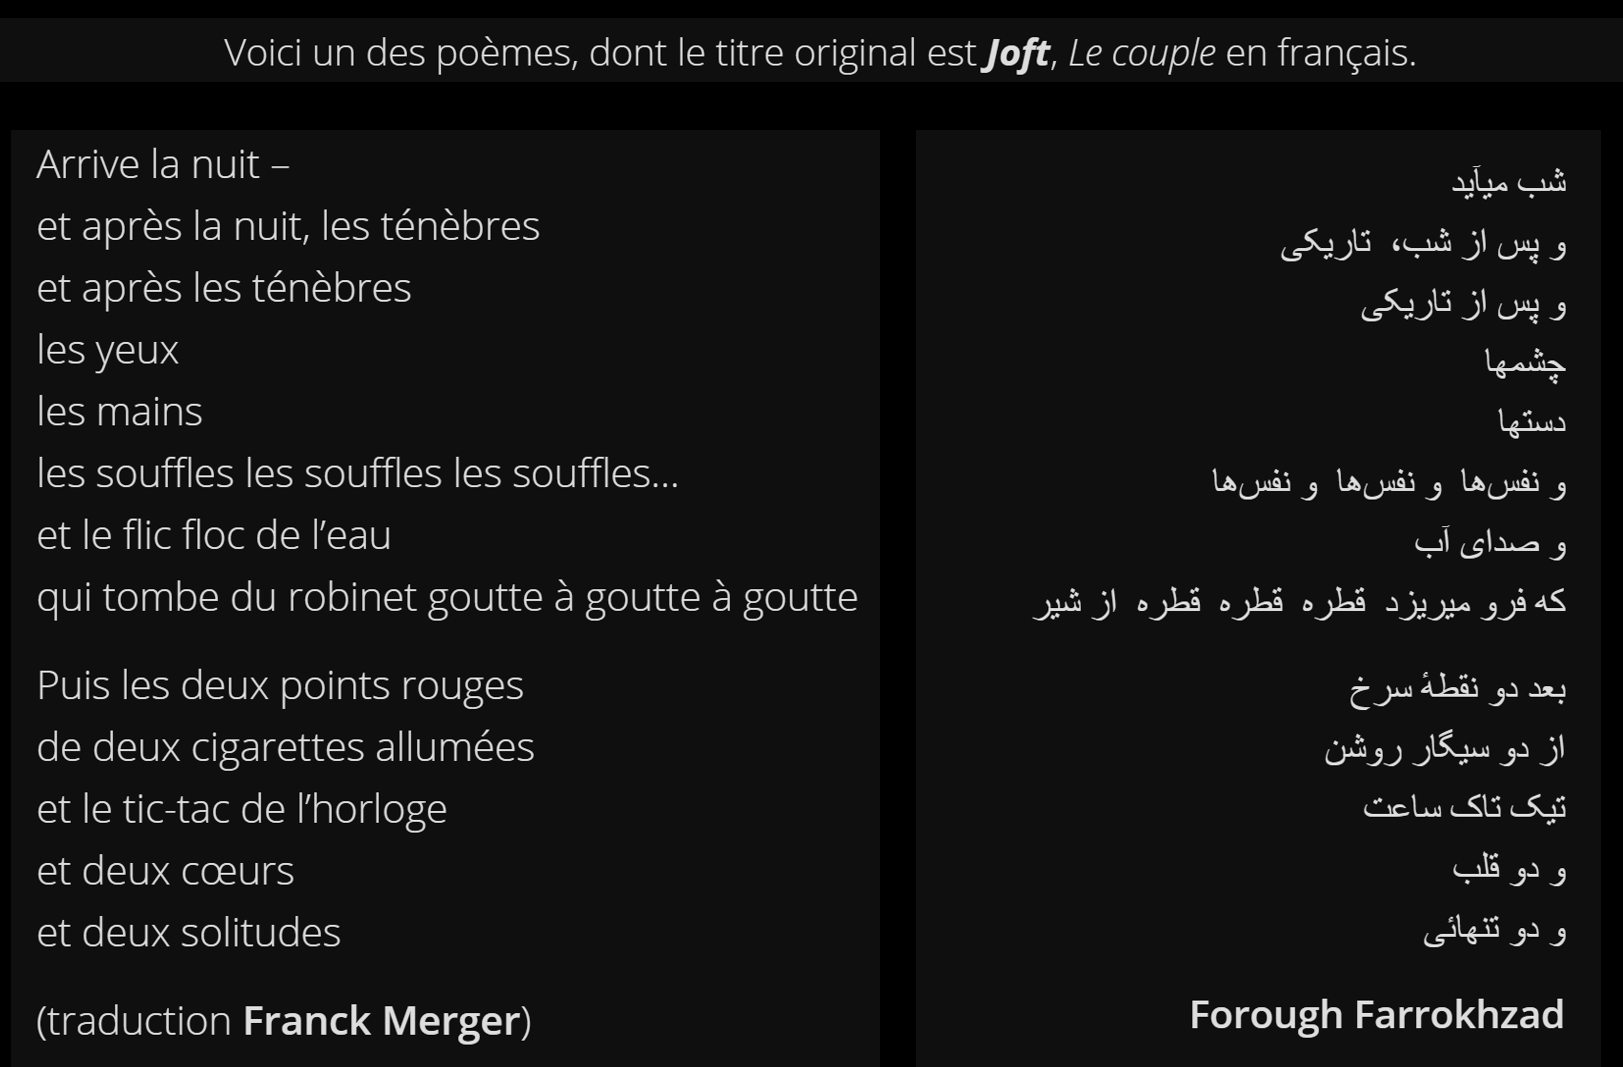 Joft - Le couple (bilingue)